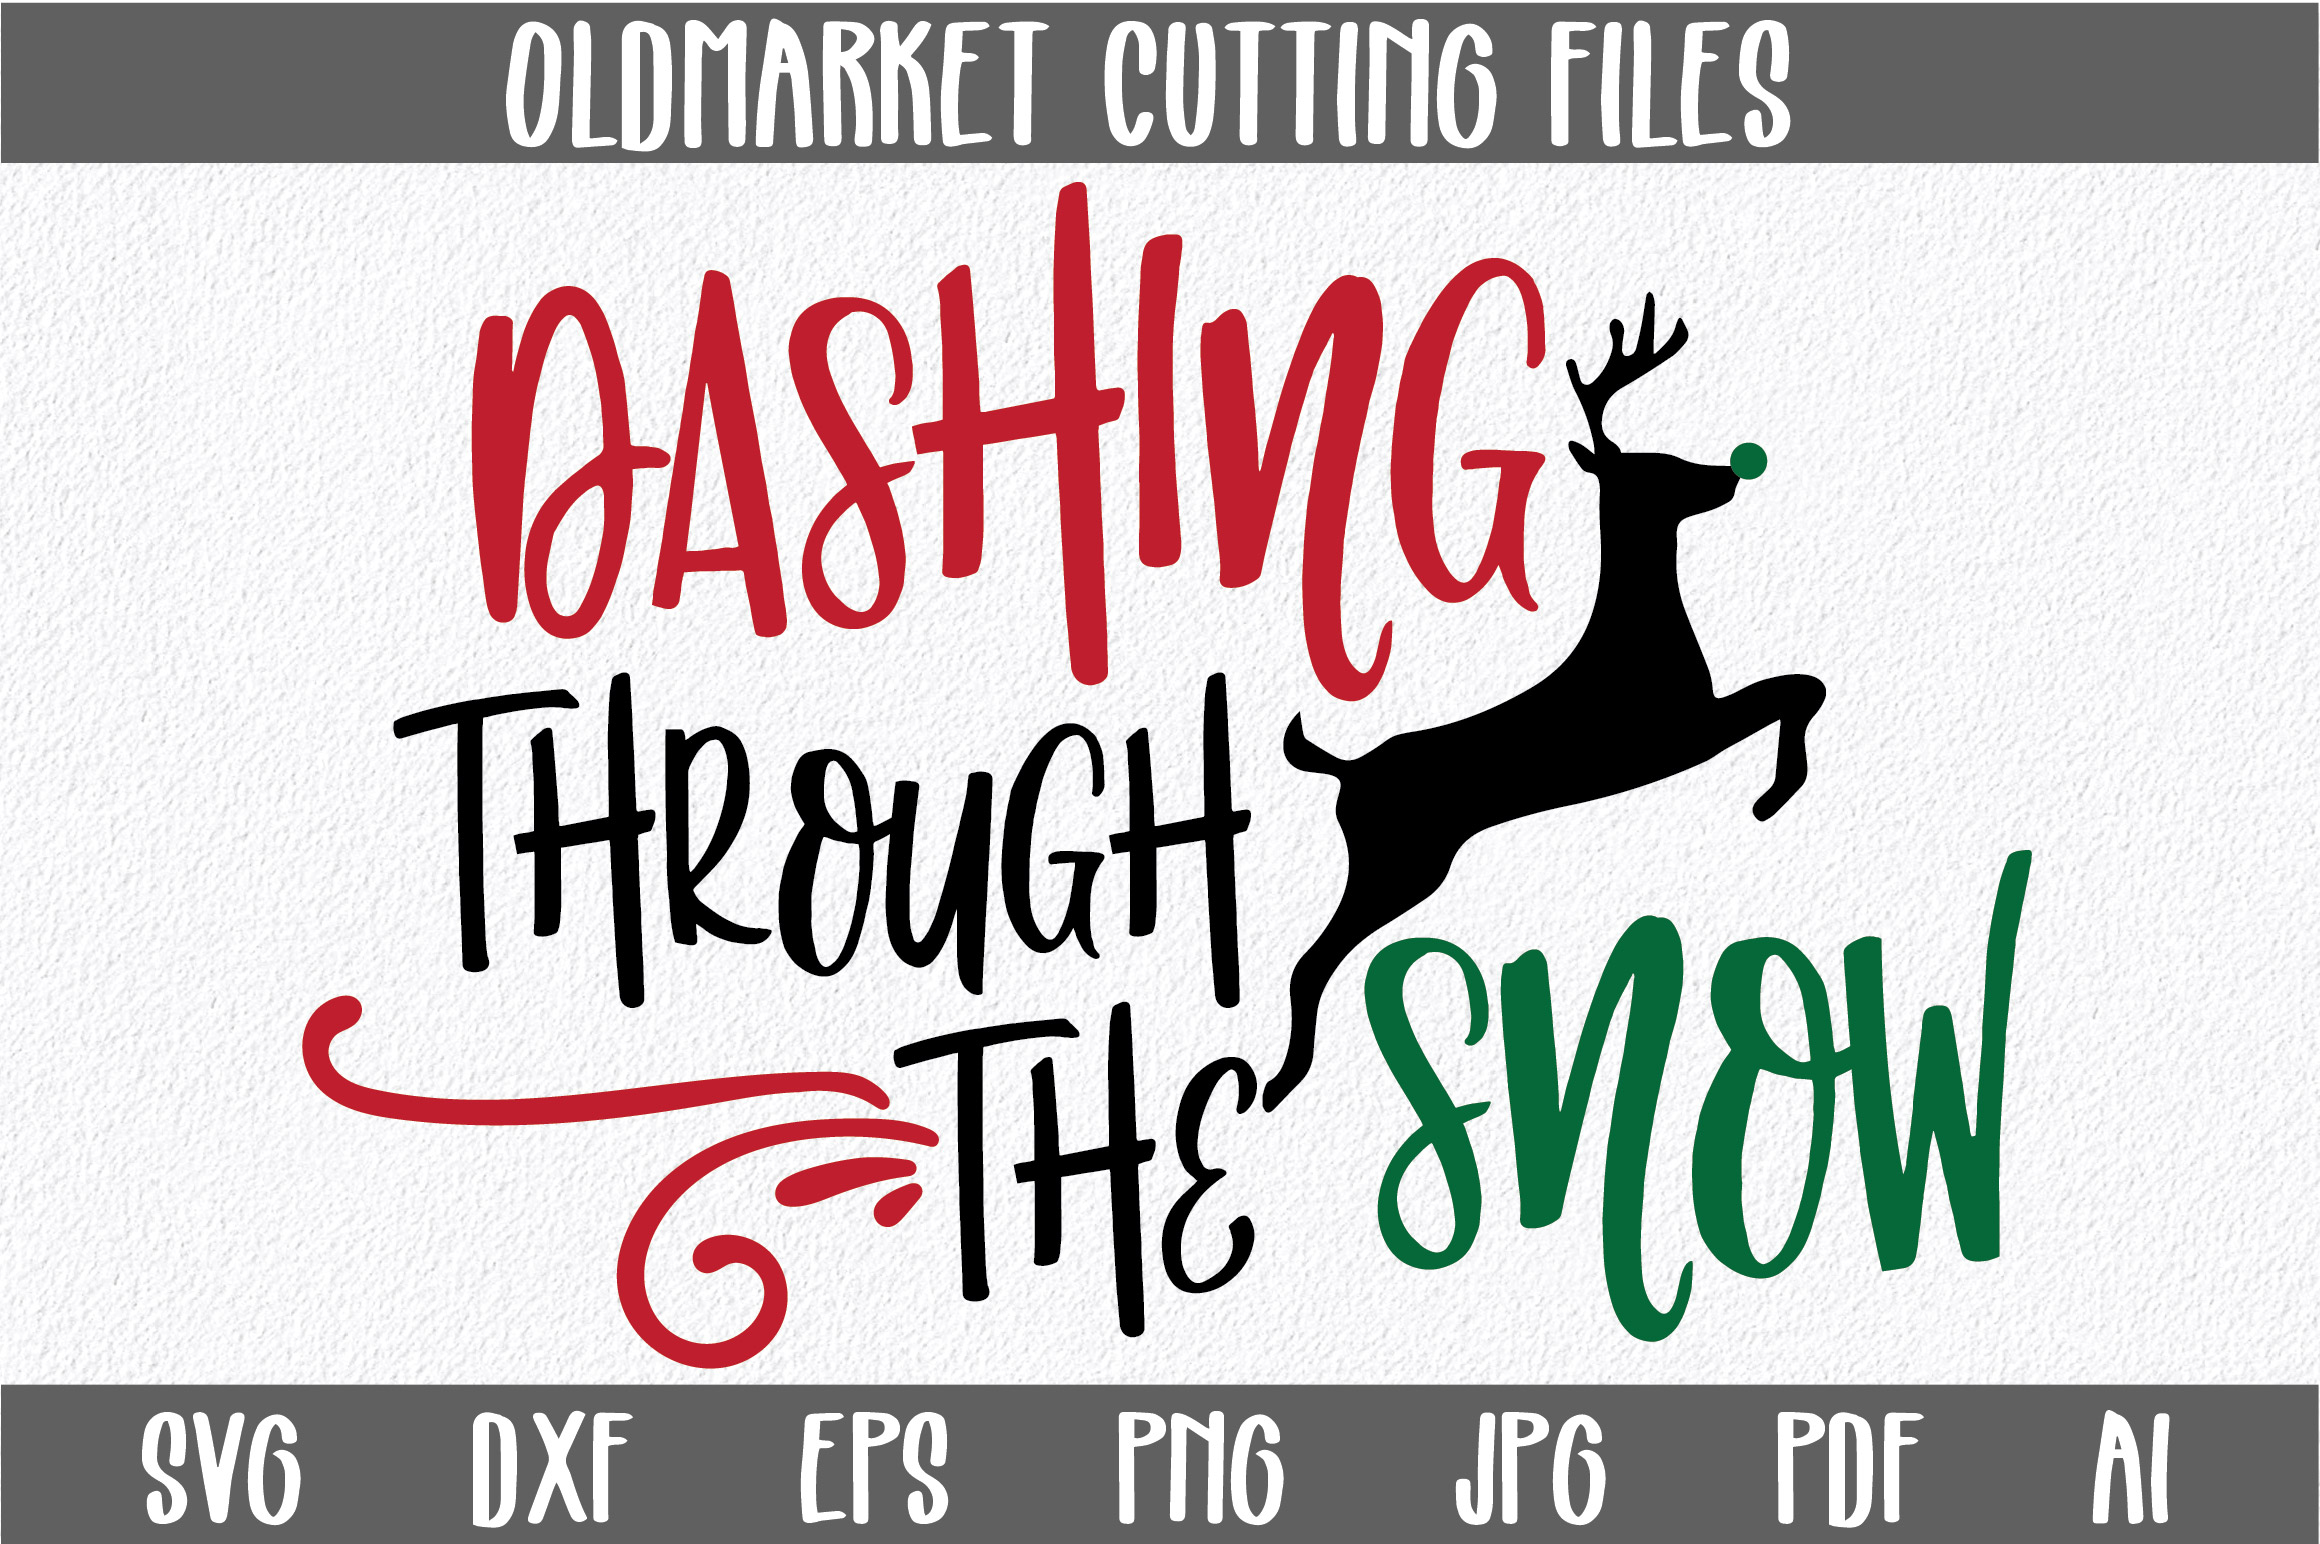 Download Free Dashing Through The Snow Svg Cut File Christmas Svg Graphic By Oldmarketdesigns Creative Fabrica for Cricut Explore, Silhouette and other cutting machines.